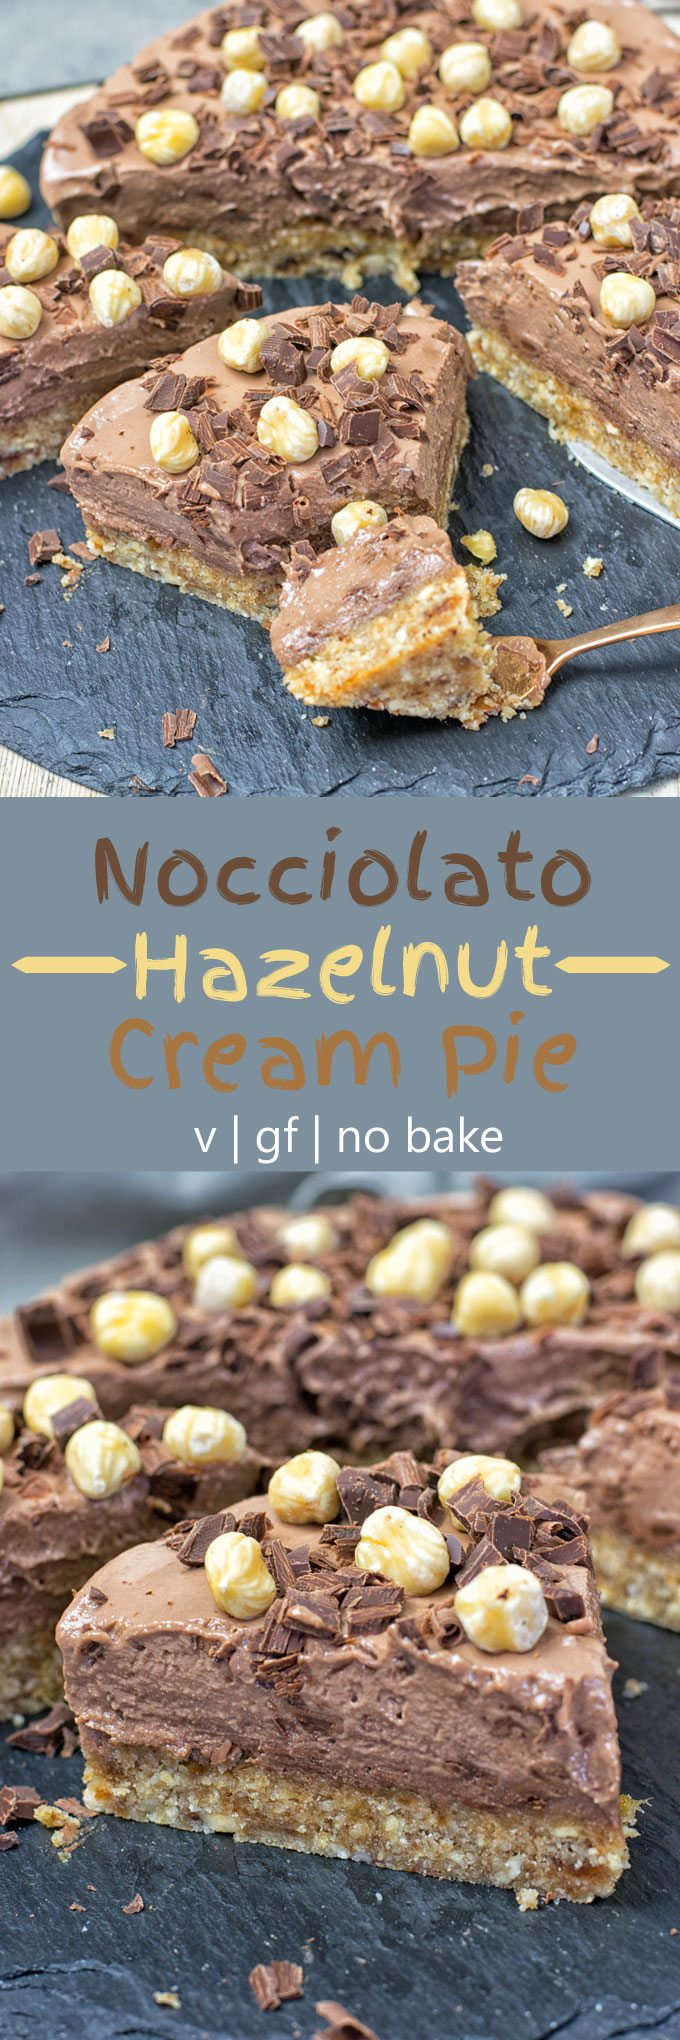 Collage of two pictures of the Nocciolato Hazelnut Cream Pie with recipe title text.